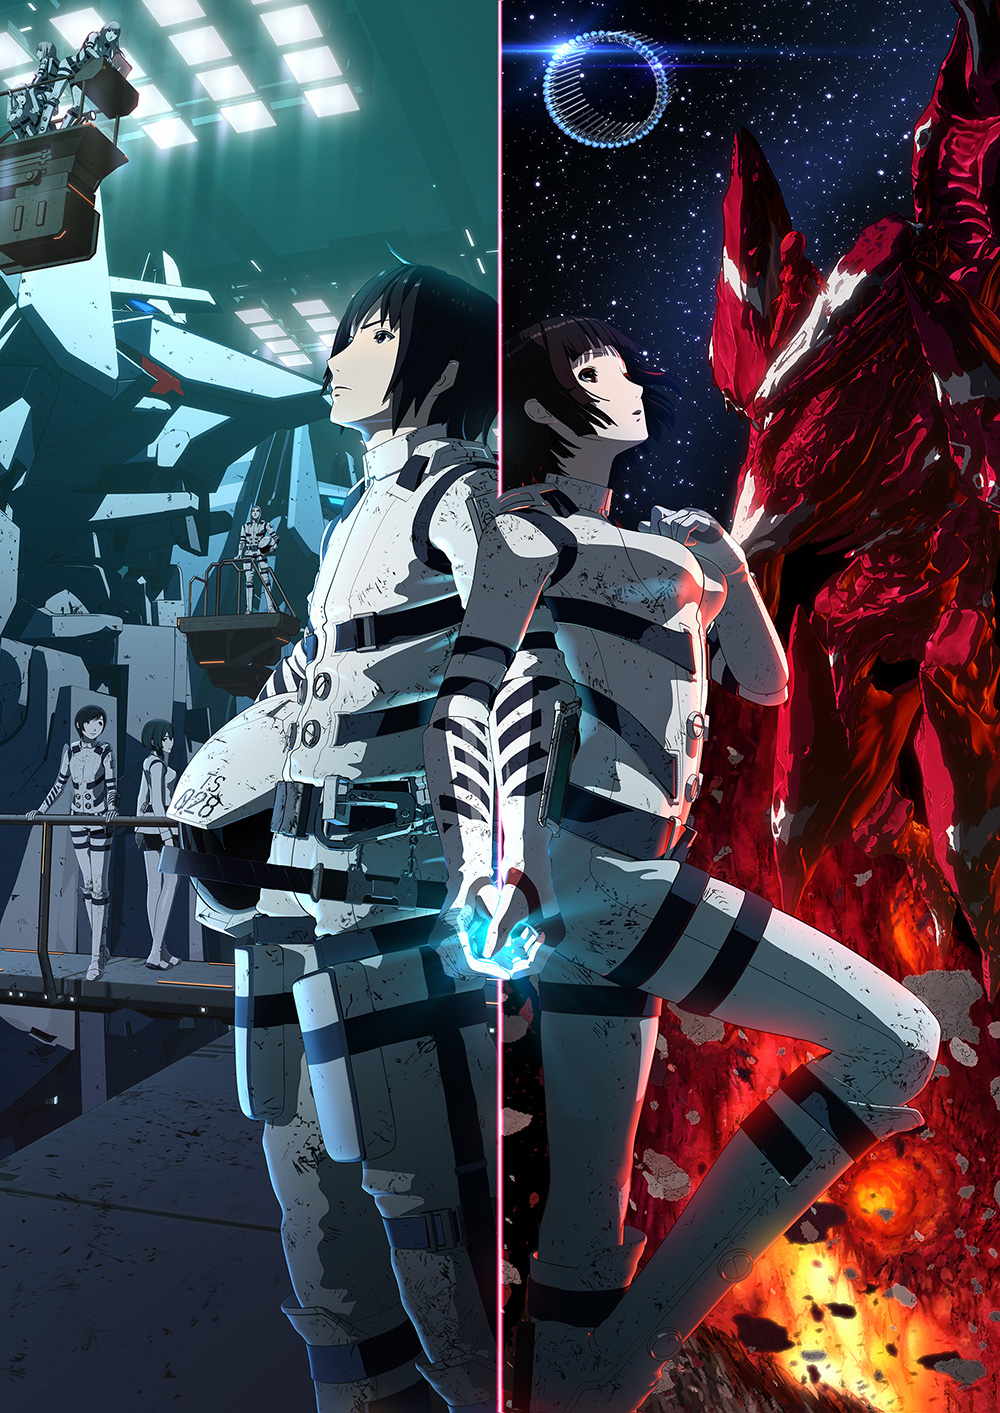 Knights-of-Sidonia-Compilation-Film-Visualv2